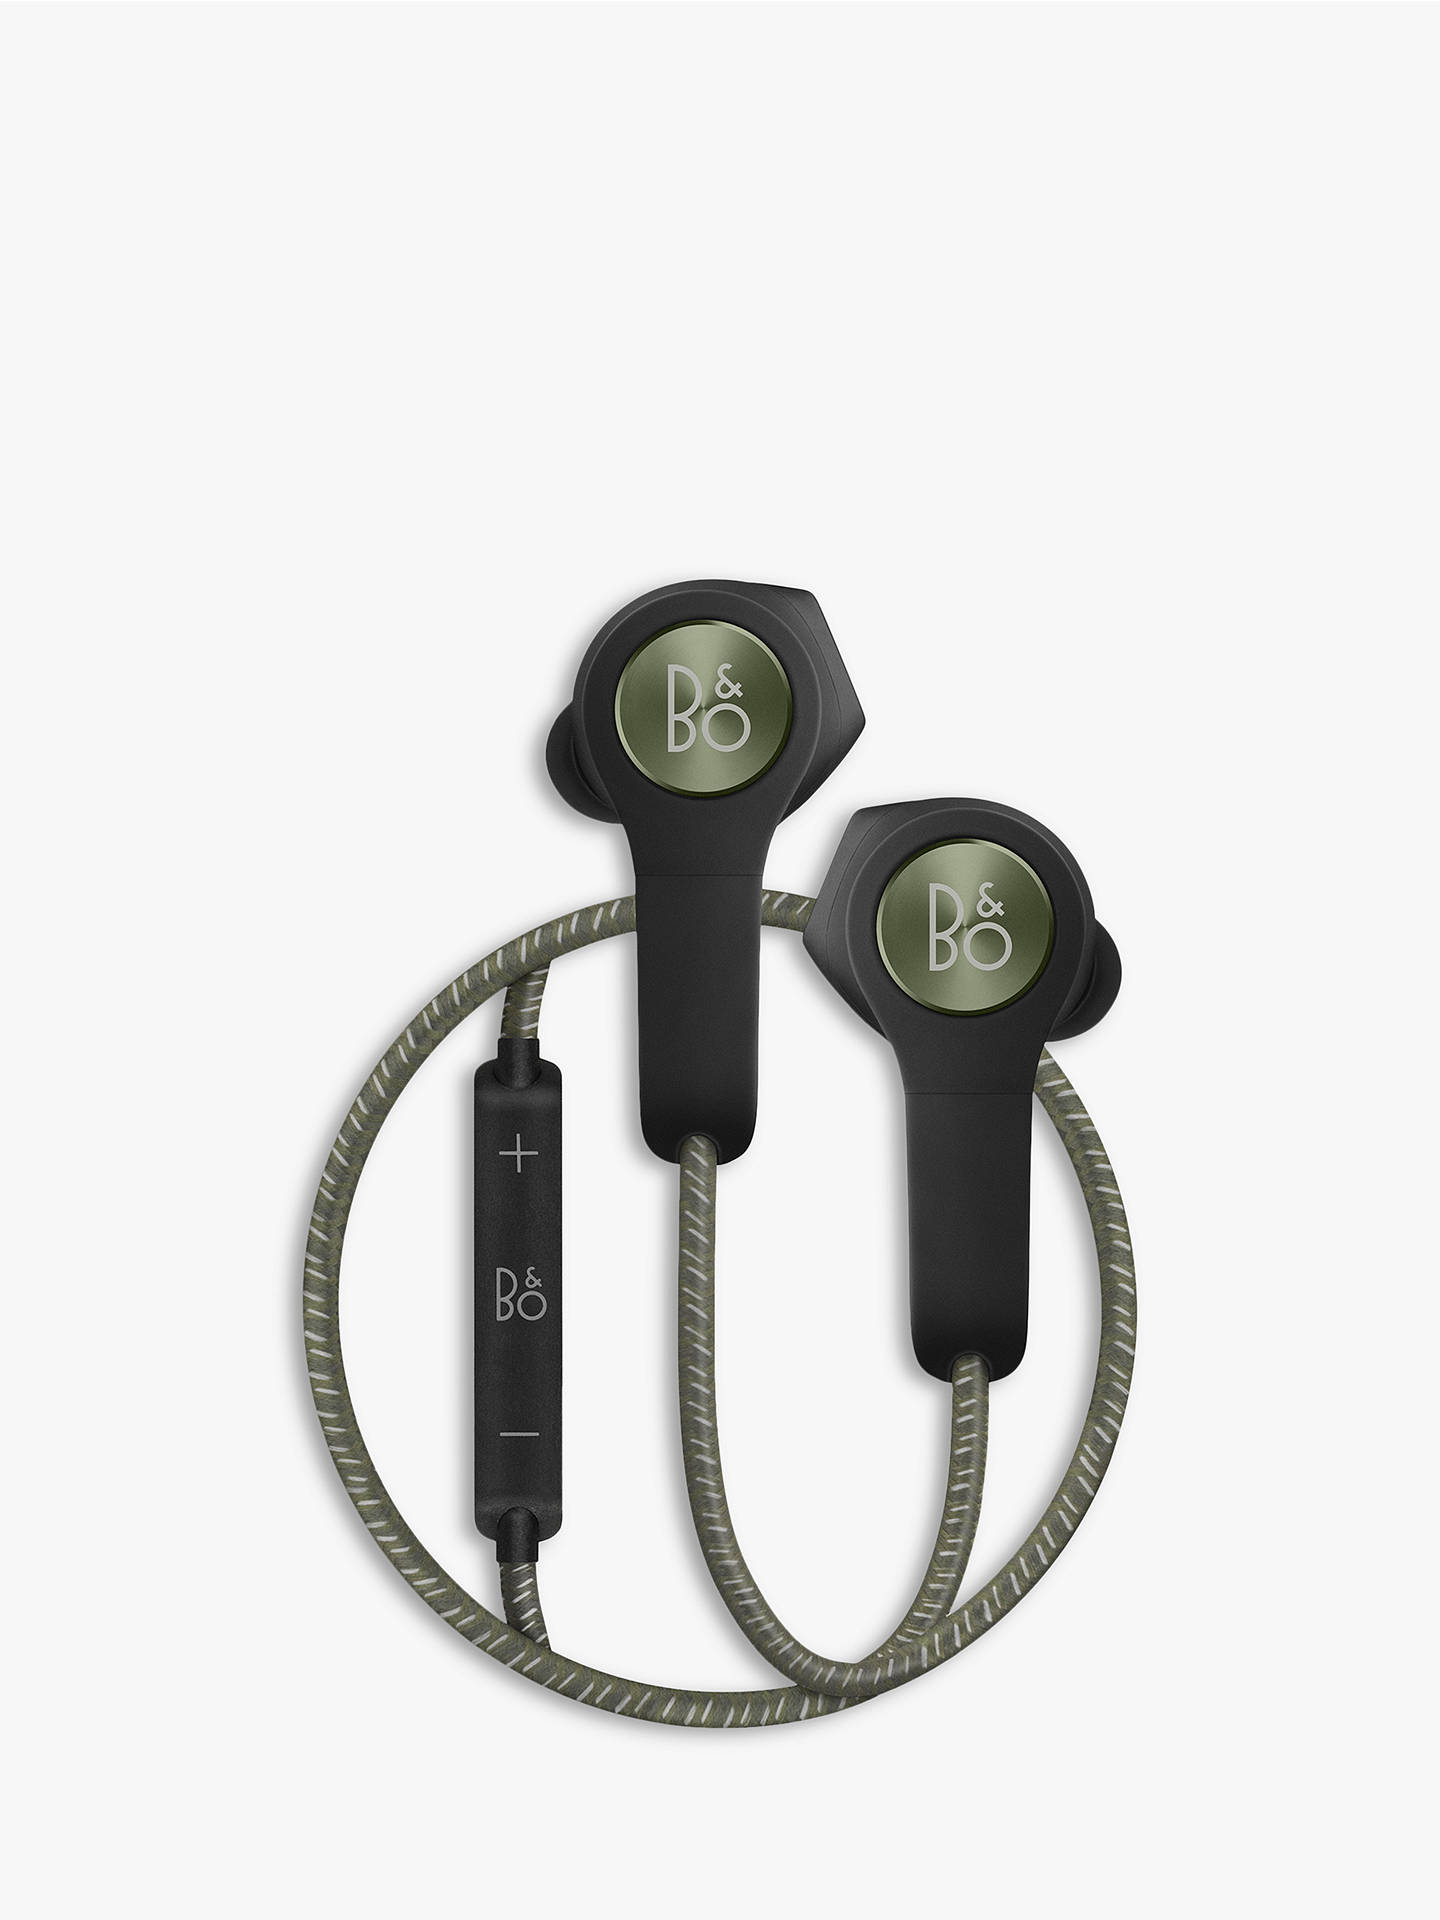 Buy Bang & Olufsen Beoplay H5 Wireless In-Ear Headphones with Ear Fins, Moss Green Online at johnlewis.com